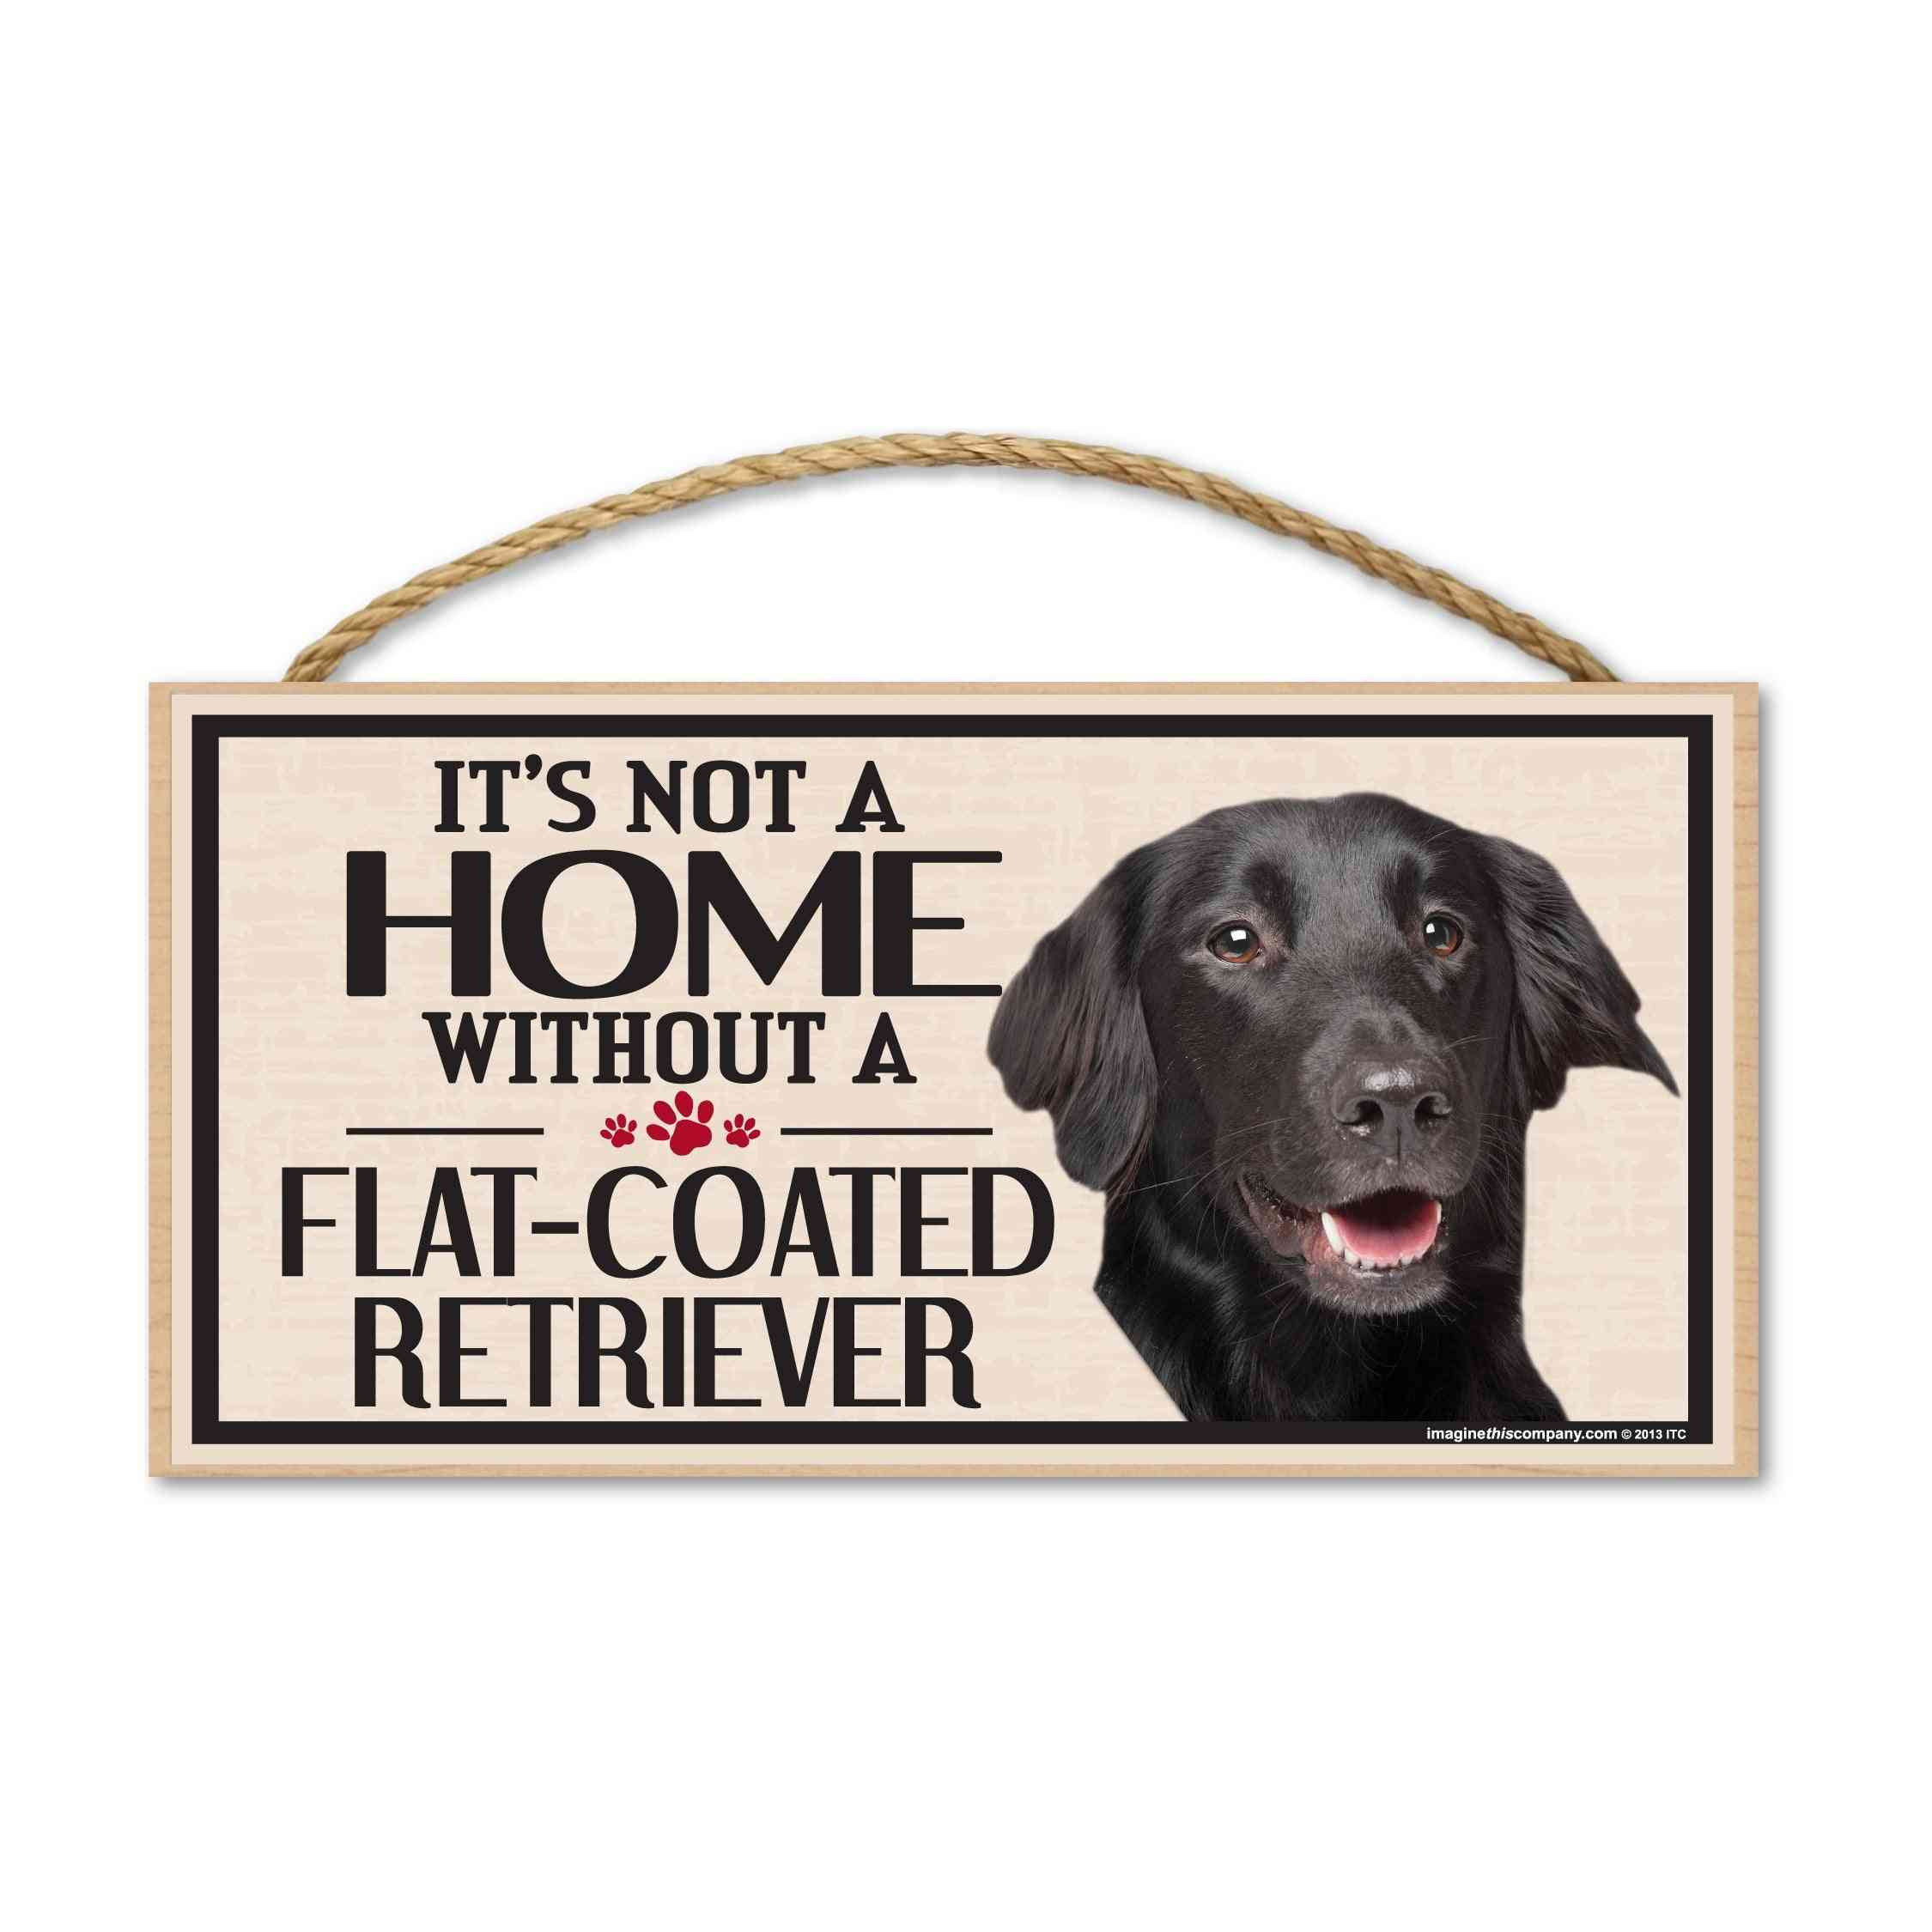 Sign, Wood, It's Not A Home Without A Flat-coated Retriever, 10